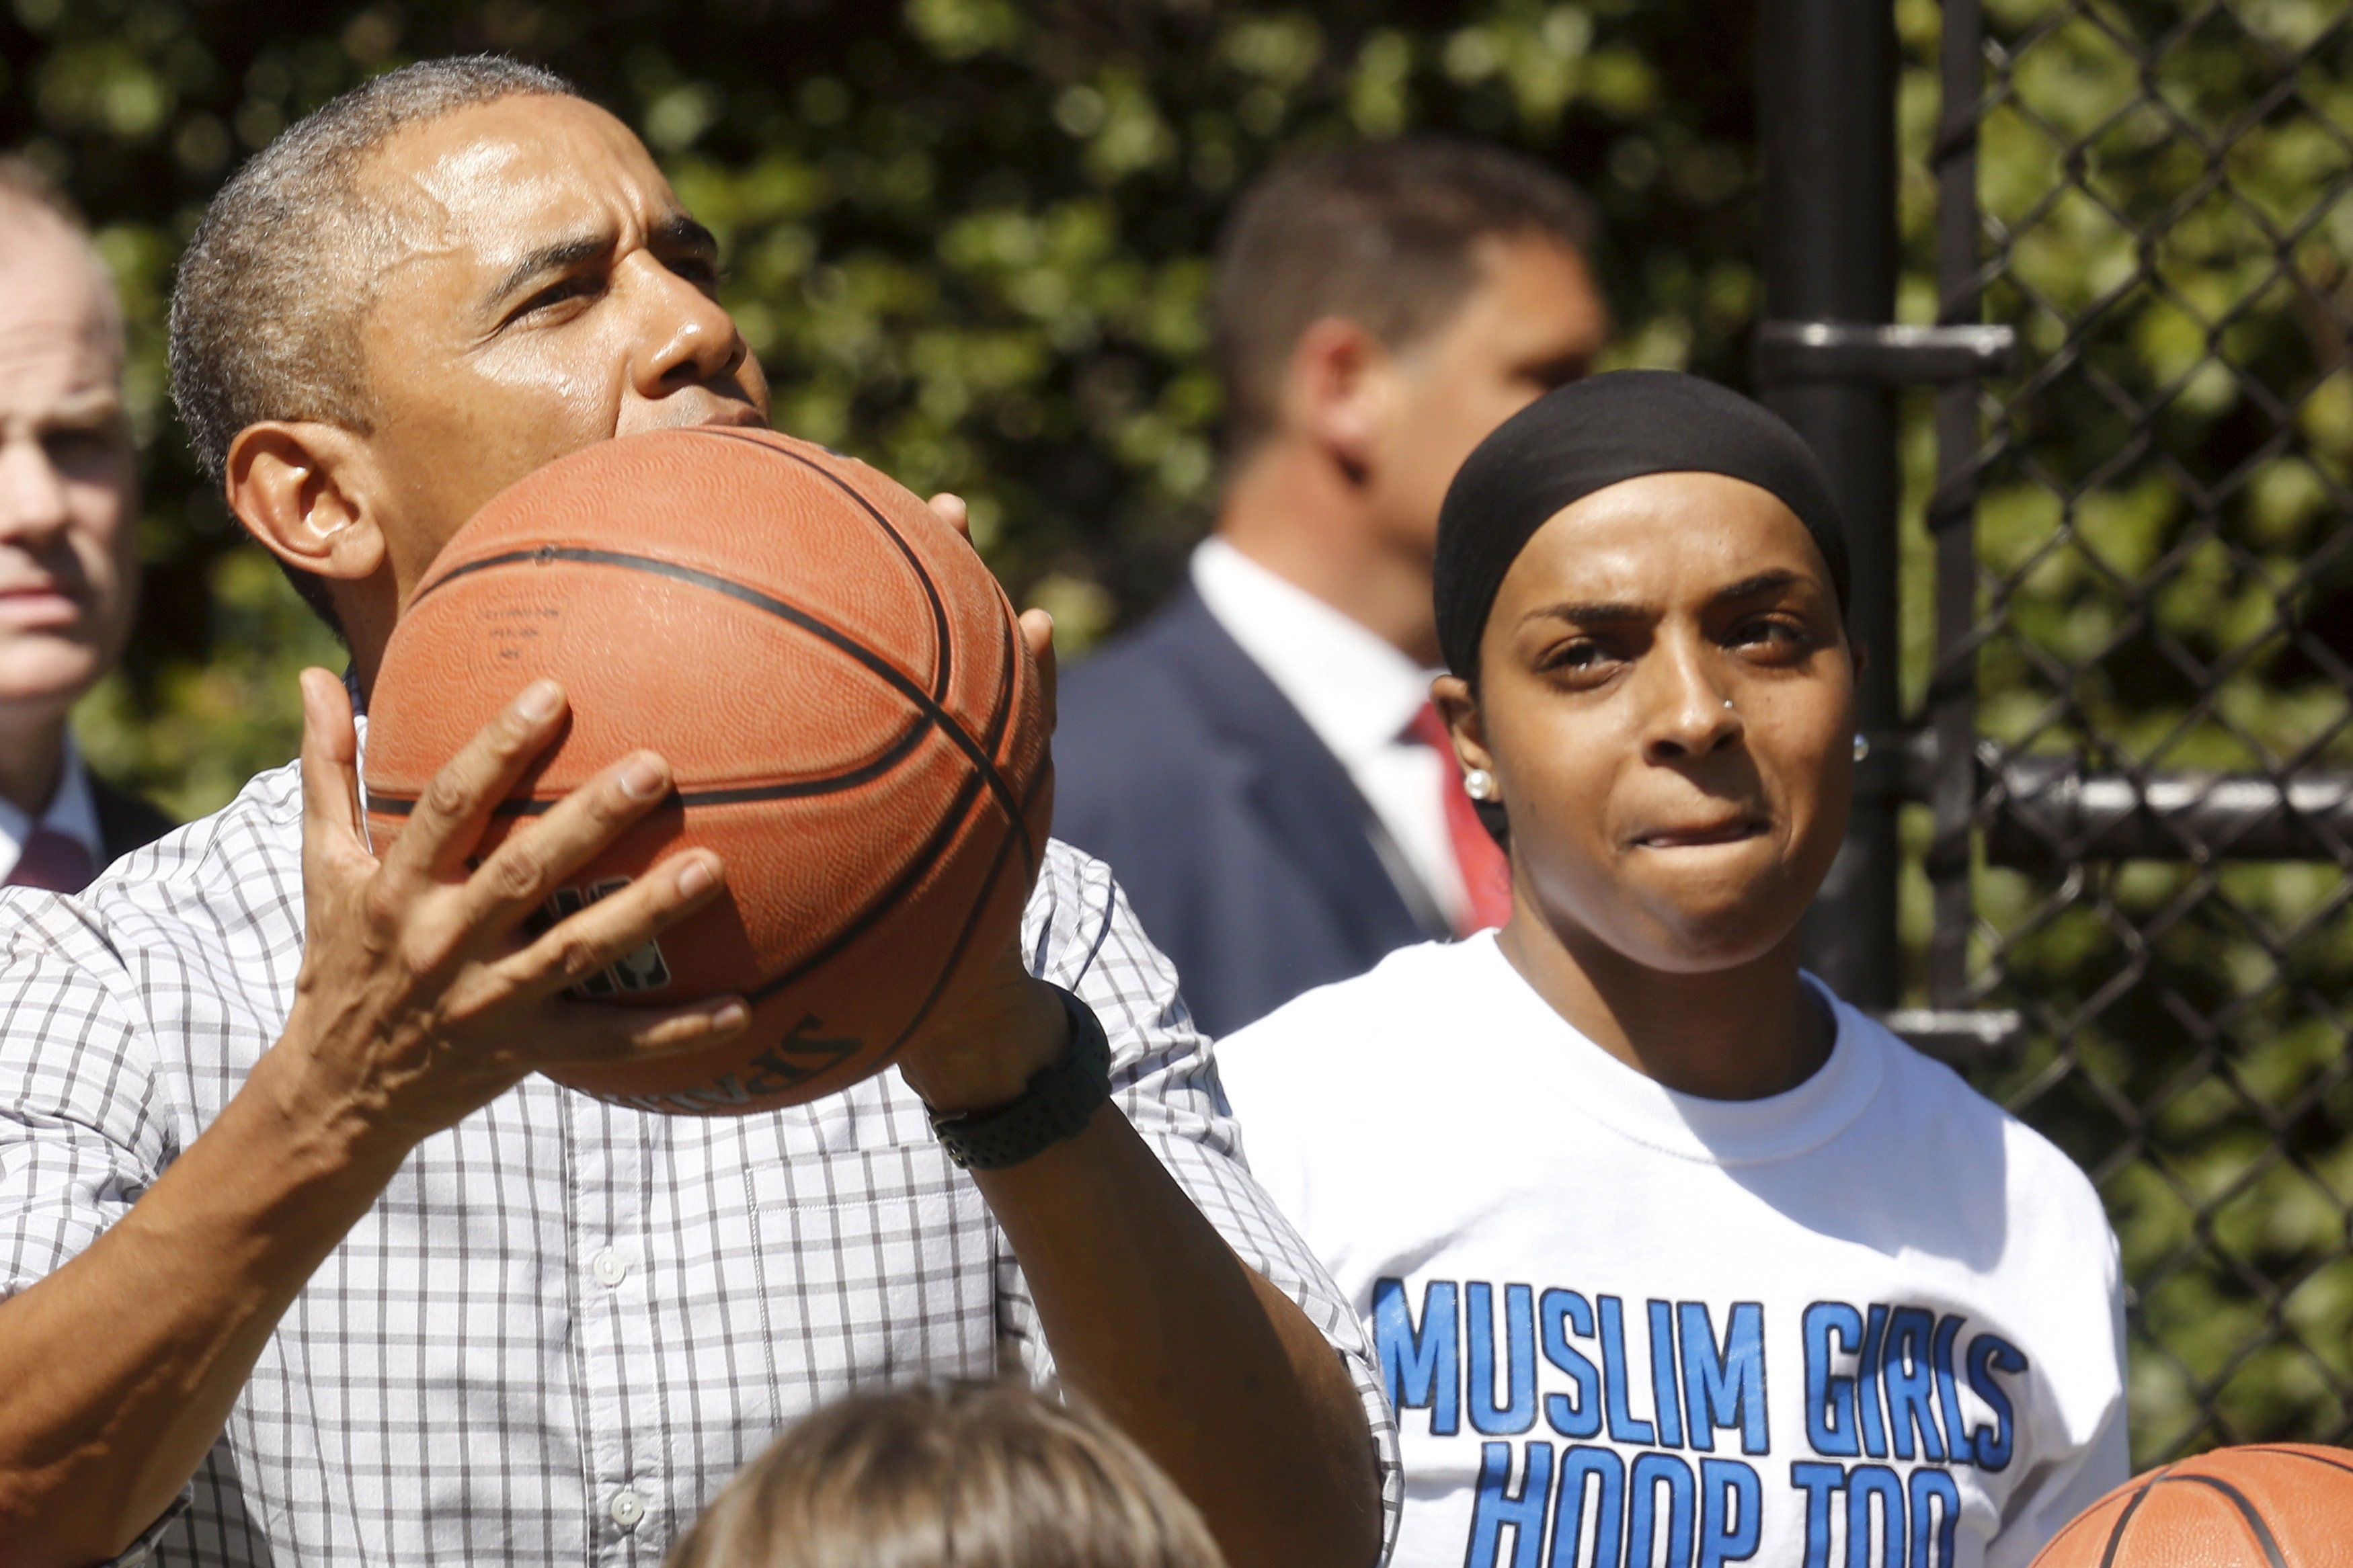 U.S. President Barack Obama plays basketball with Bilqis Abdul-Qaadir (R) as he takes a tour of the exercise activities at the annual Easter Egg Roll at the White House in Washington April 6, 2015.  REUTERS/Jonathan Ernst